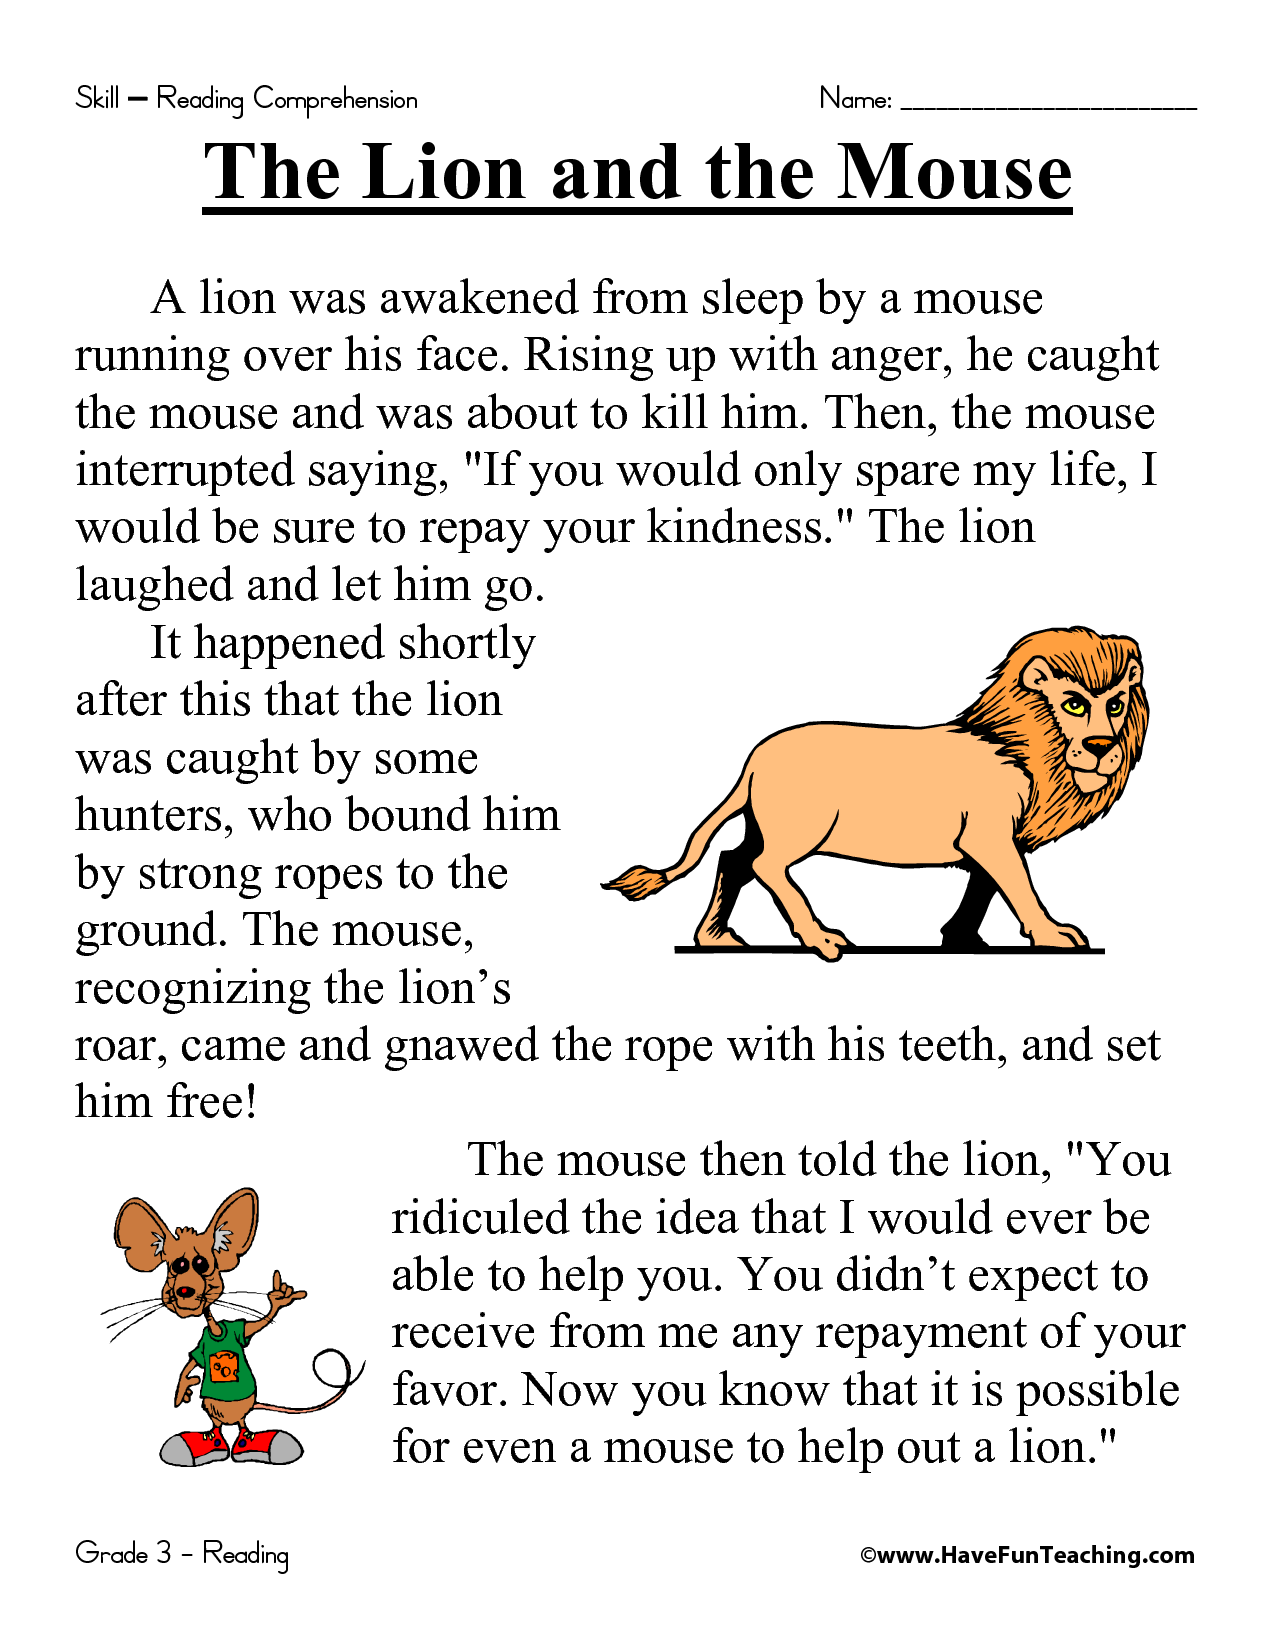 Free Worksheet Free Printable Worksheets For 1st Grade Reading Comprehension first grade reading comprehension worksheets the lion and mouse worksheet